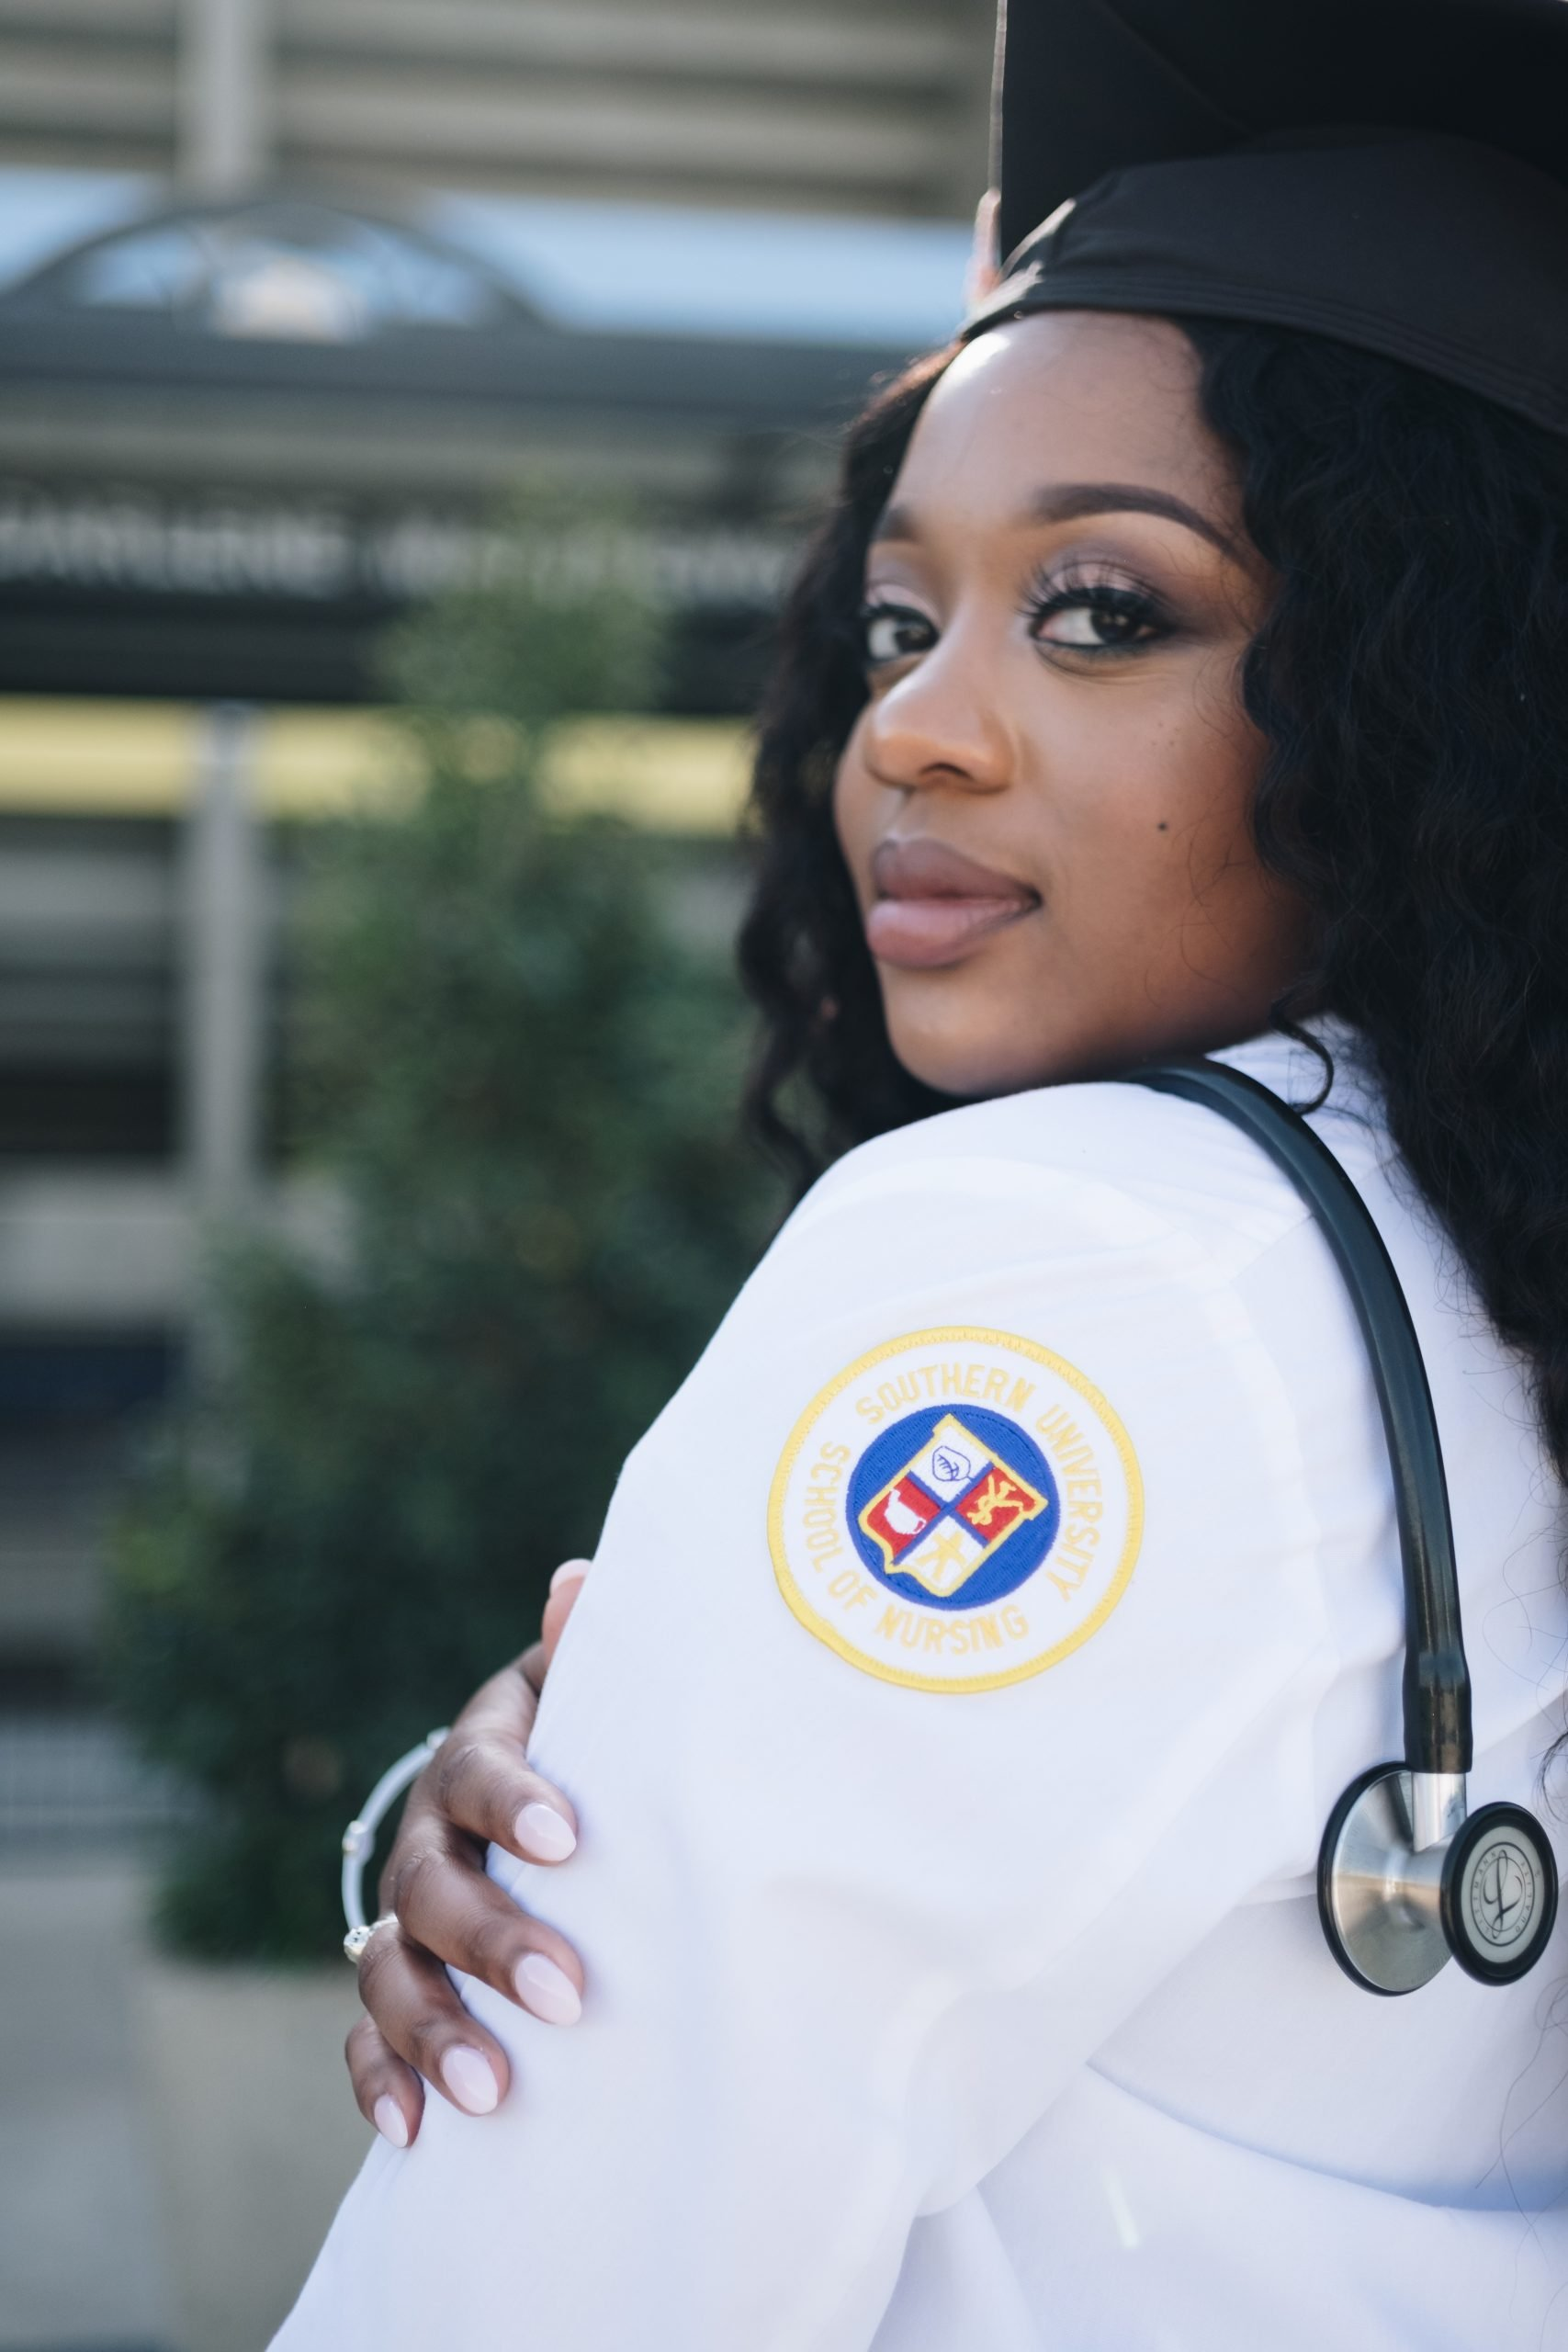 Woman wearing white long sleeved shirt and stethoscope